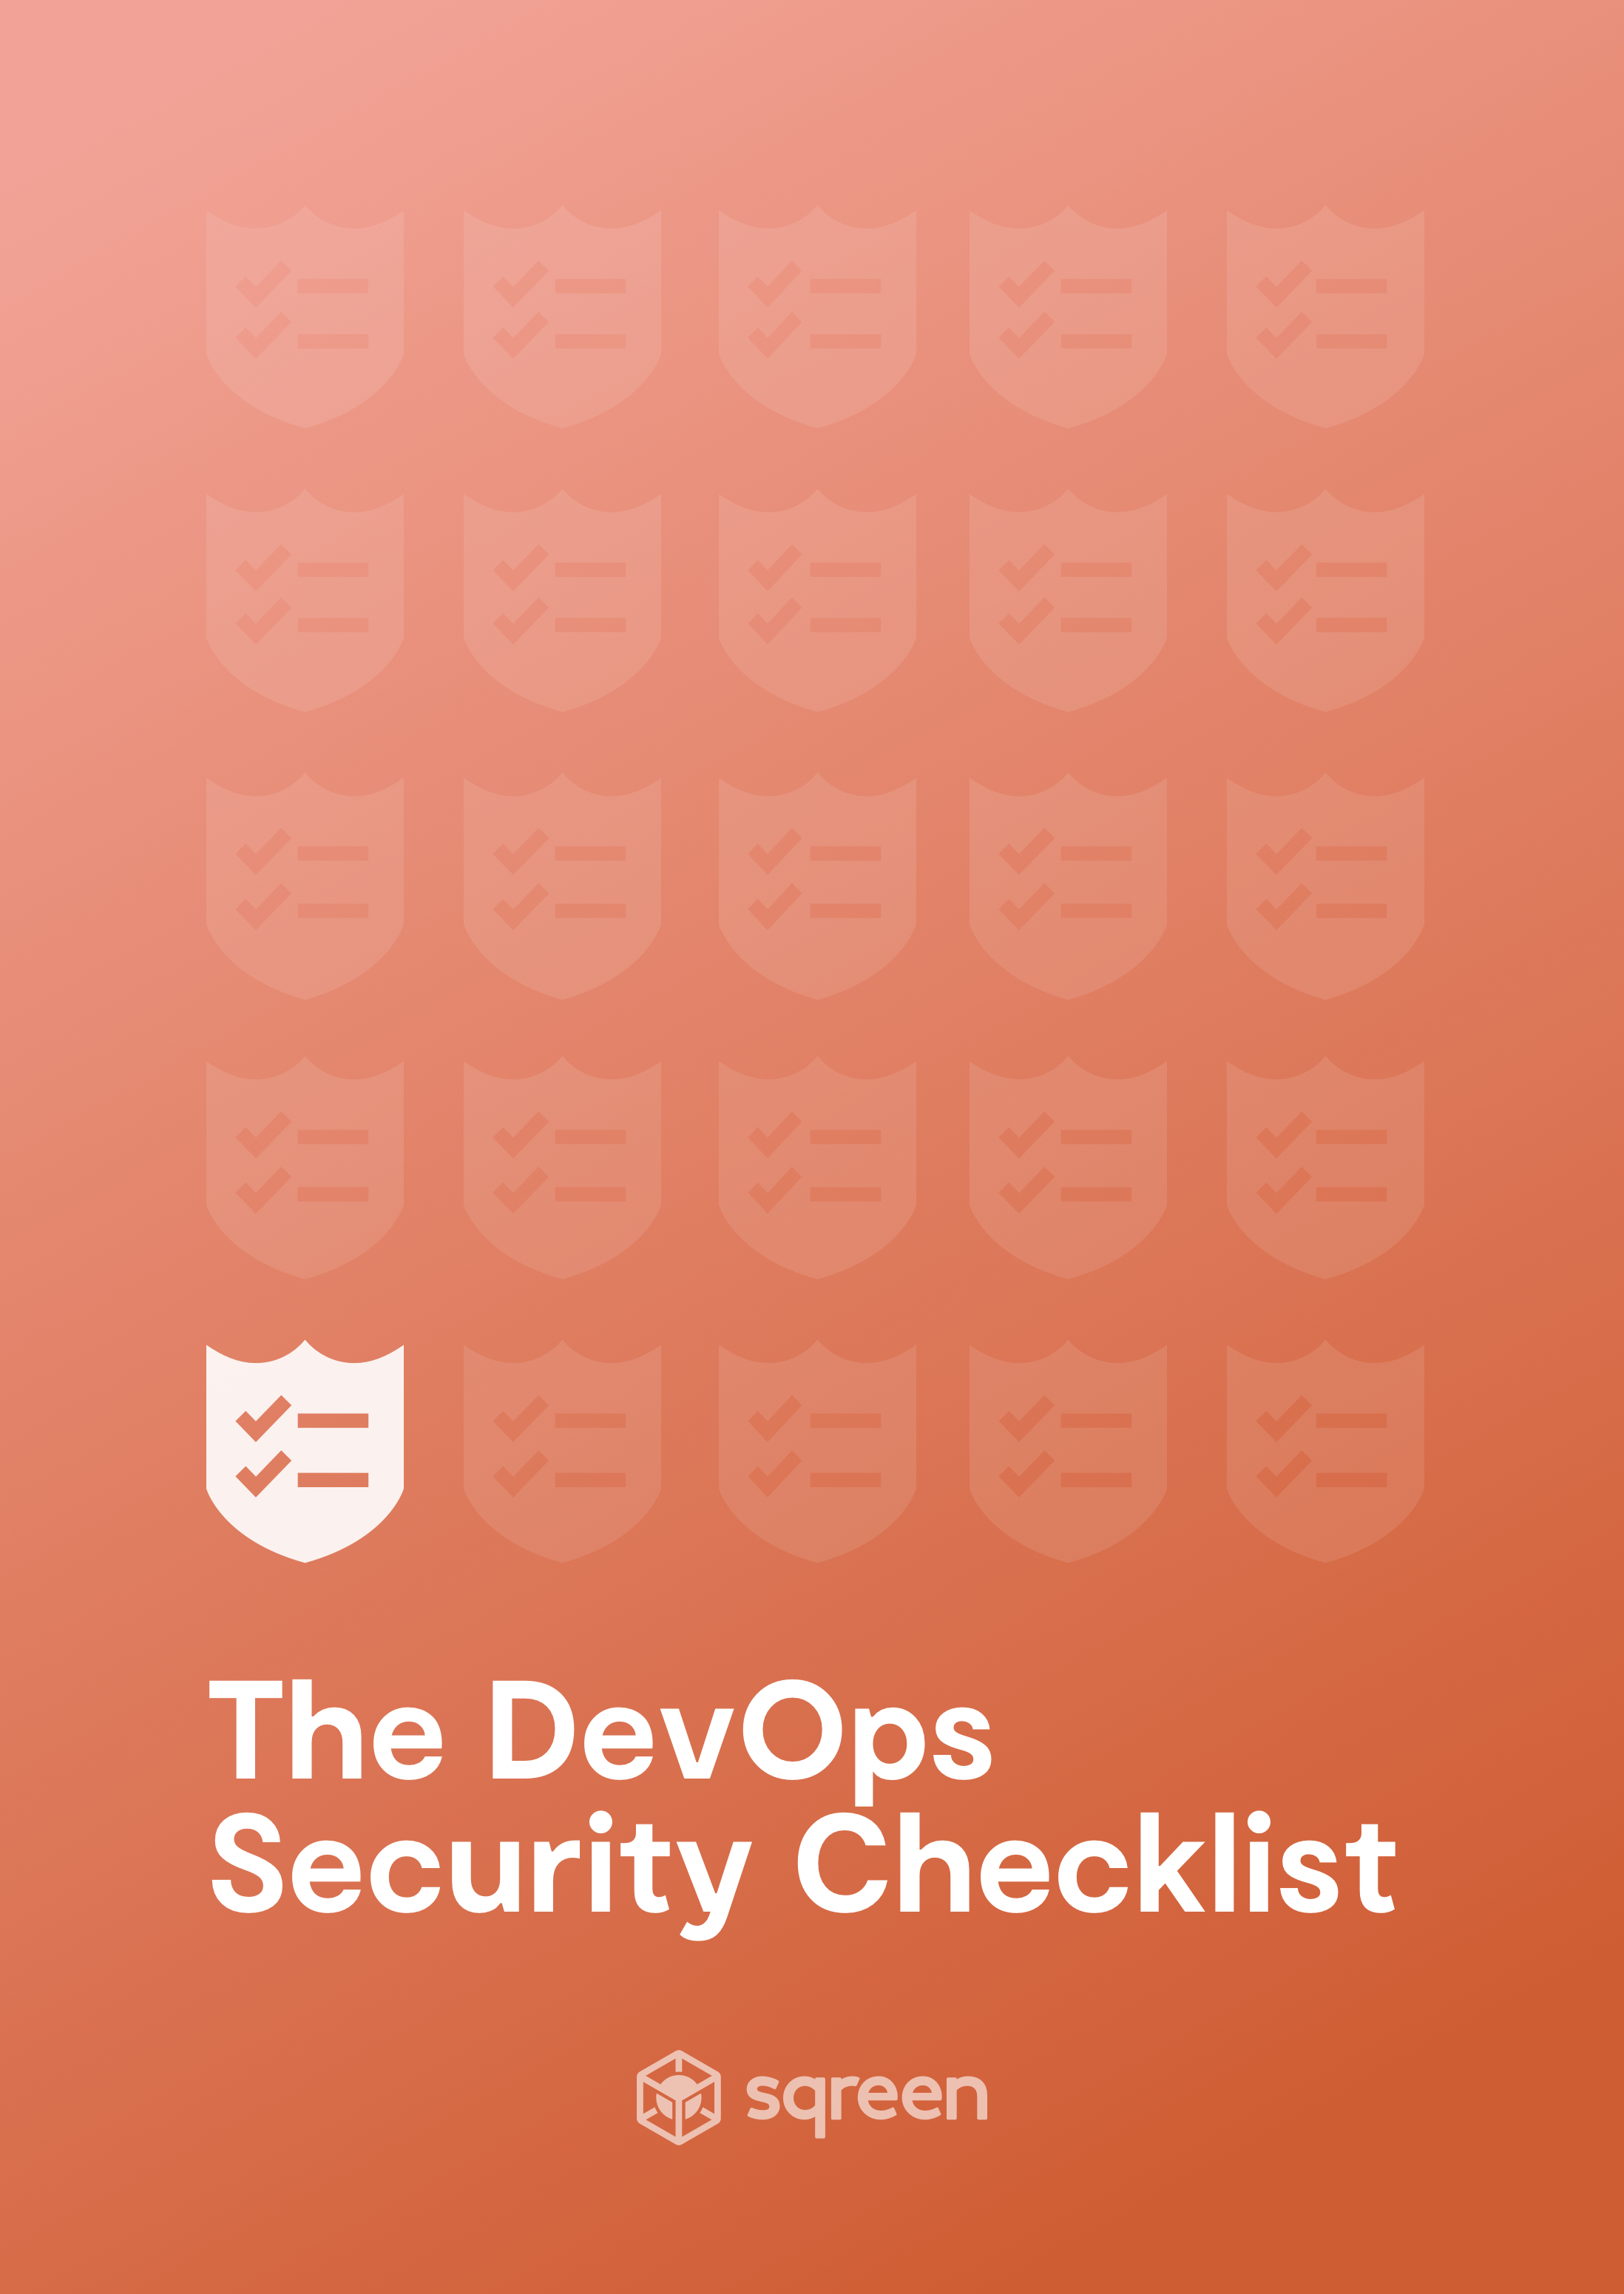 Devops Security Checklist | Sqreen